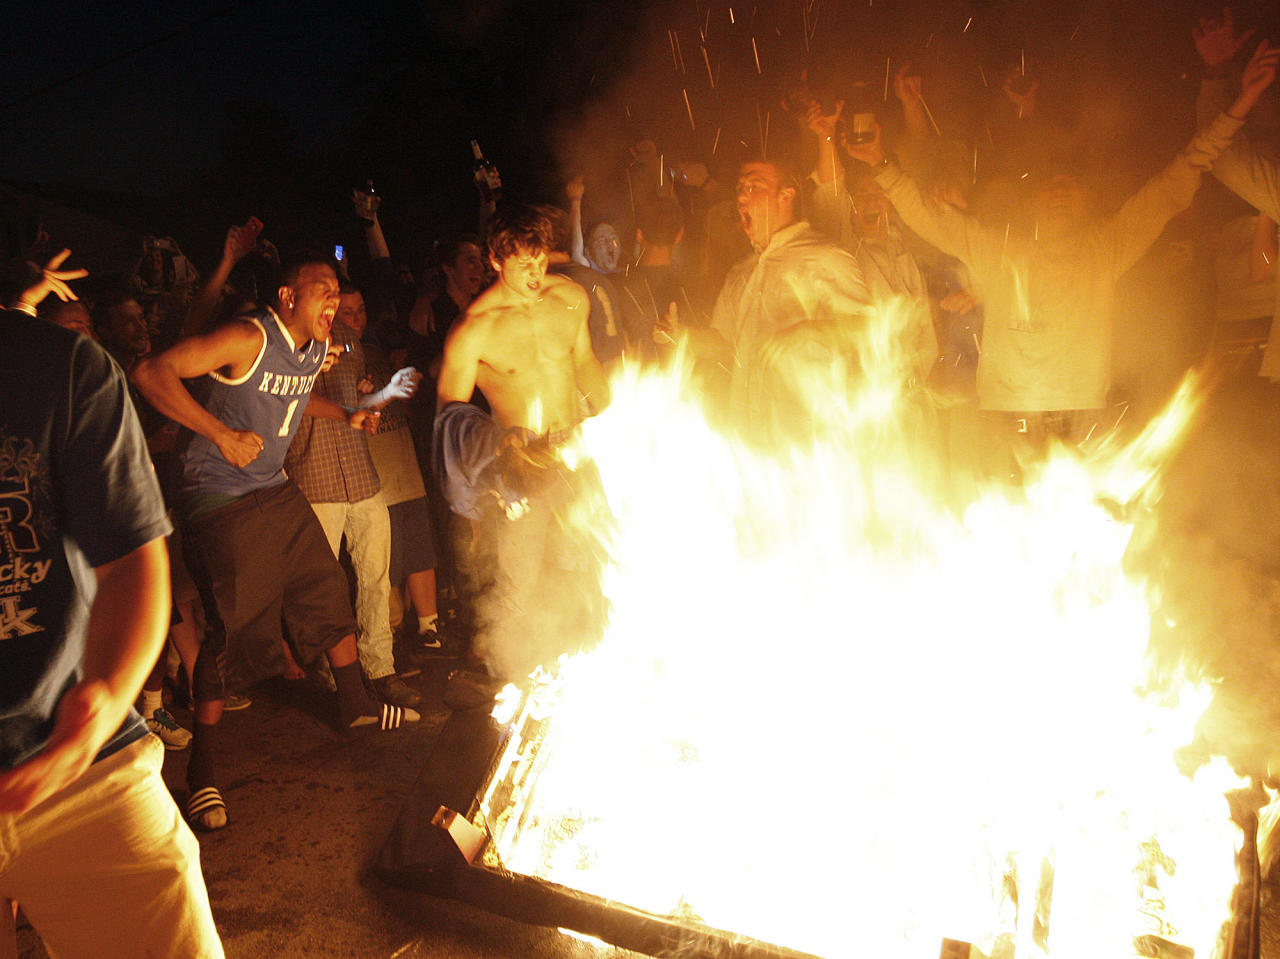 Kentucky fans dance around a fire on State Street as they celebrate Kentucky's 69-61 win over Louisville in an NCAA Final Four semifinal college basketball tournament game, Saturday, March 31, 2012, in Lexington, Ky. (AP Photo/The Courier-Journal, Amy Wallot) NO SALES; MAGS OUT; NO ARCHIVE; MANDATORY CREDIT